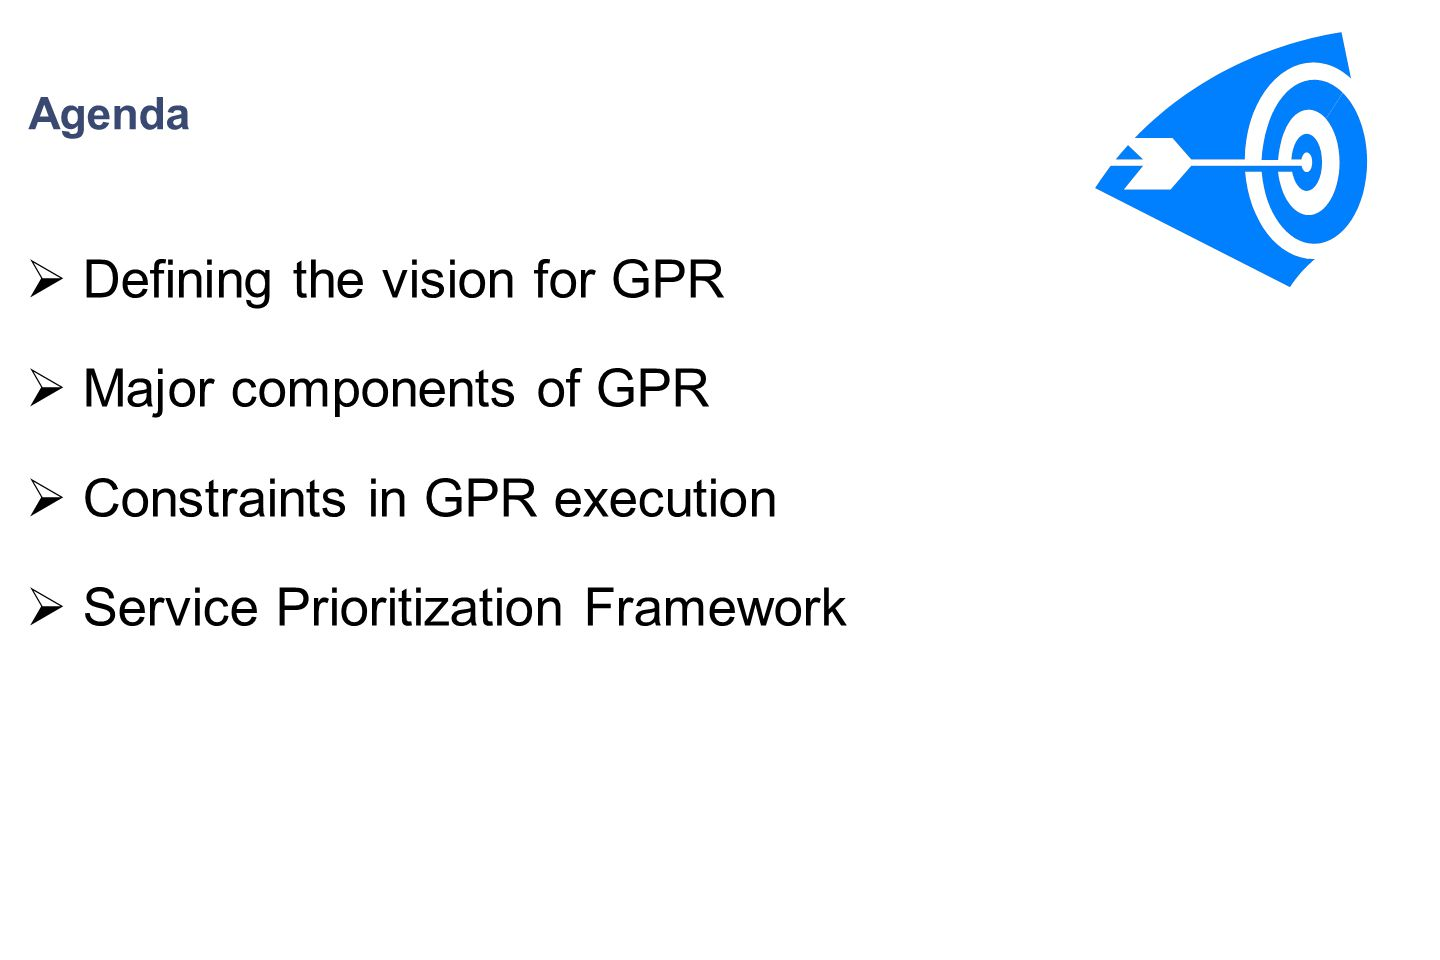 Agenda  Defining the vision for GPR  Major components of GPR  Constraints in GPR execution  Service Prioritization Framework